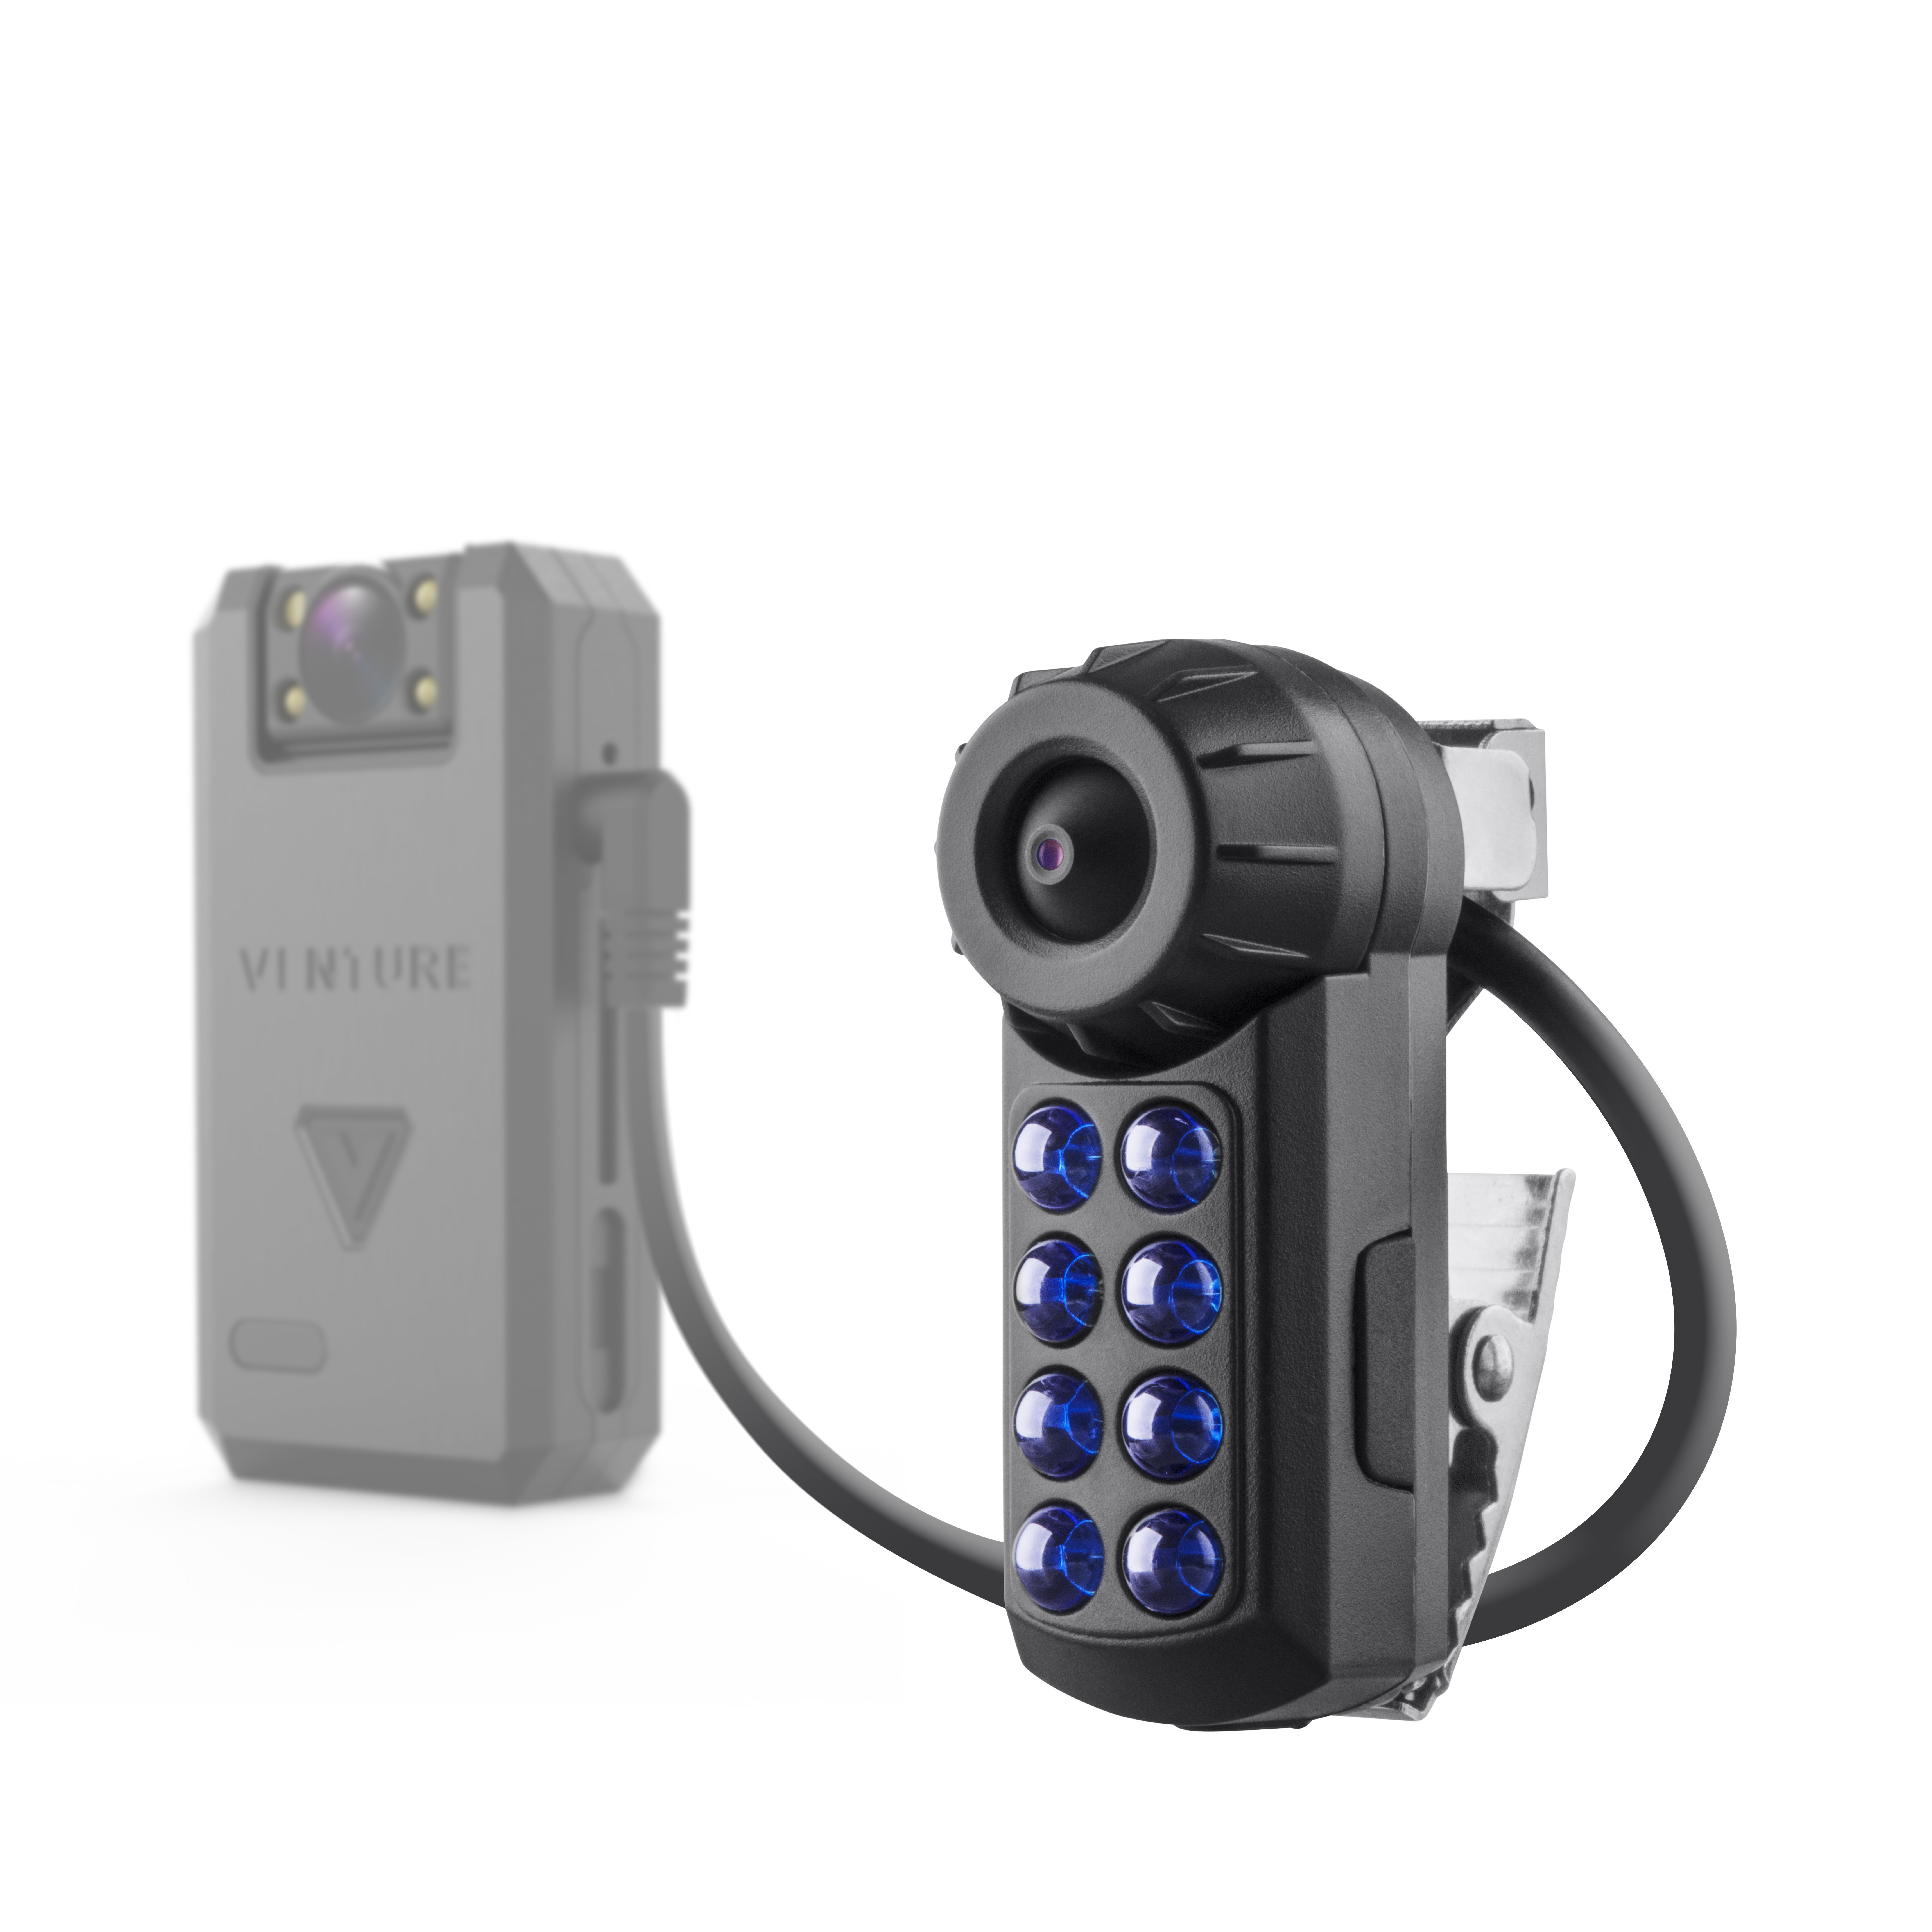 Wolfcom Venture Night Vision